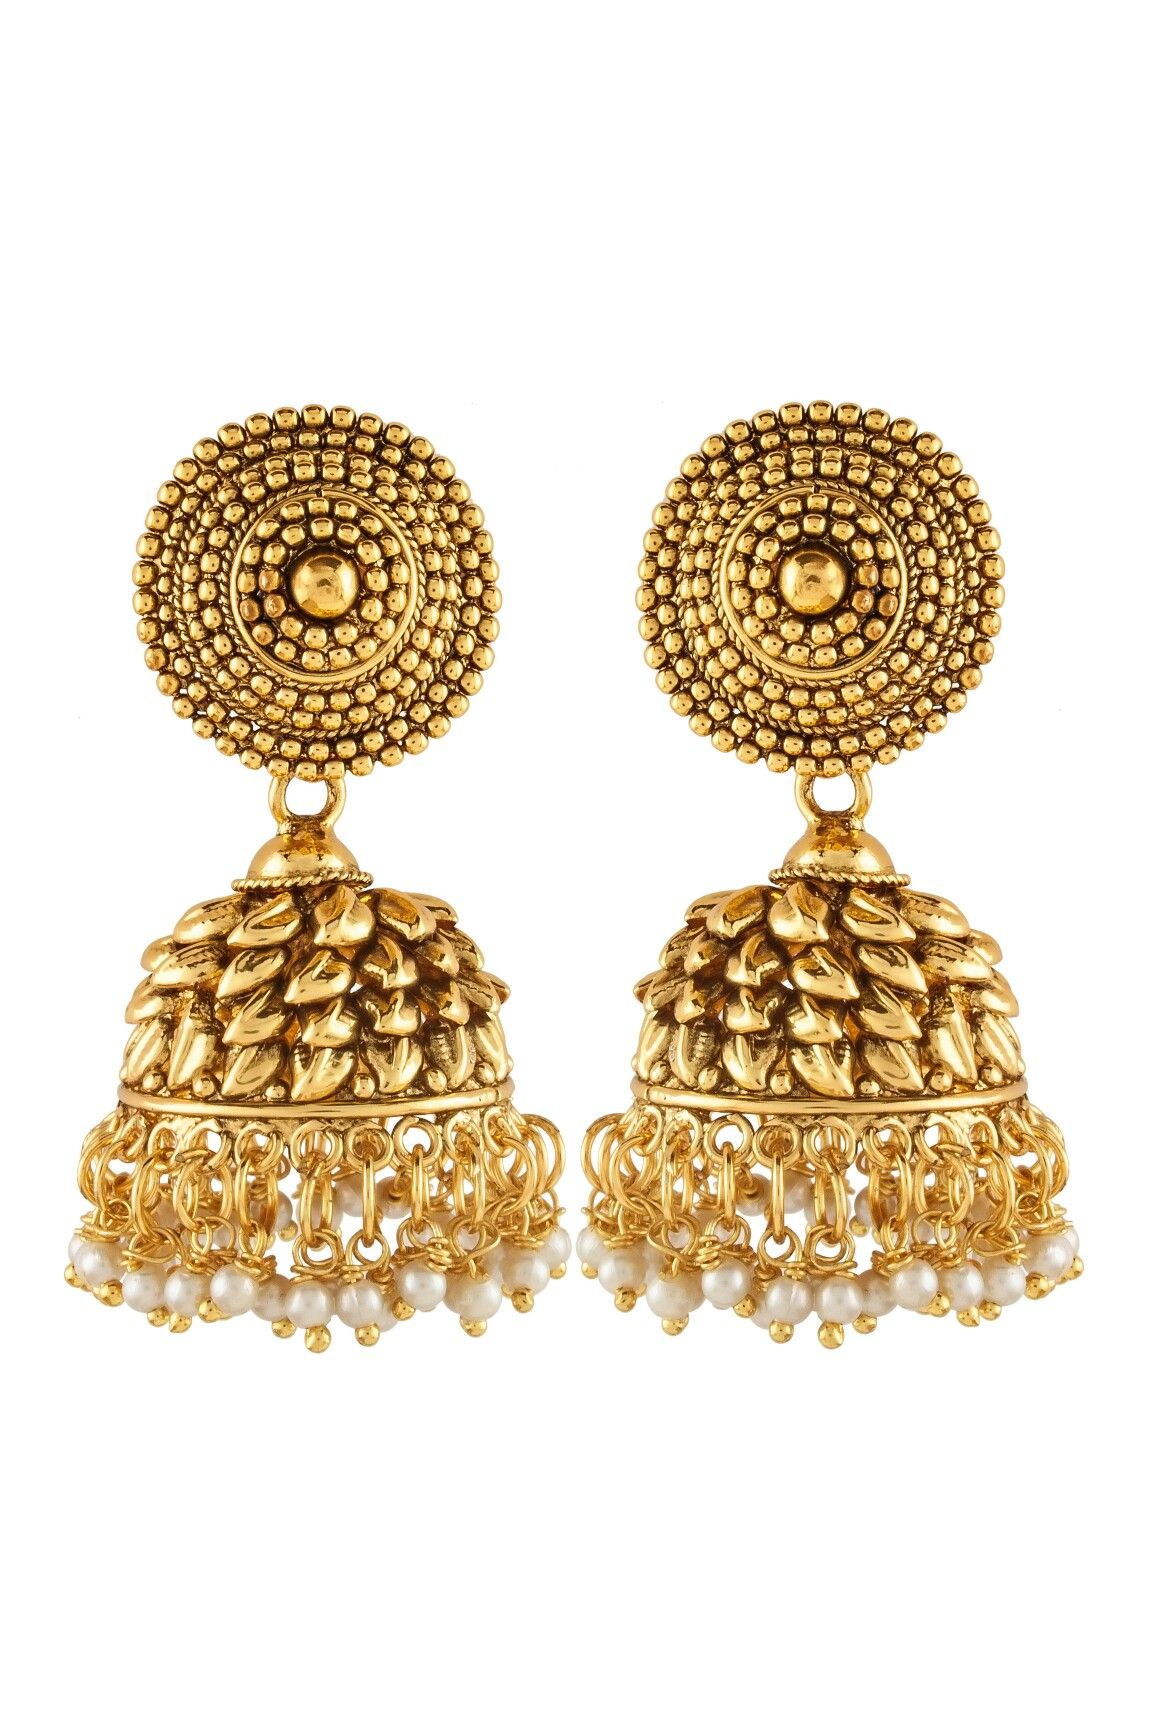 Antique Gold Plated Size Jhumka Earrings Price Rs 650 Contact Or Whtsup On 918080256582 Copper Jhumki Earring South Indian Style